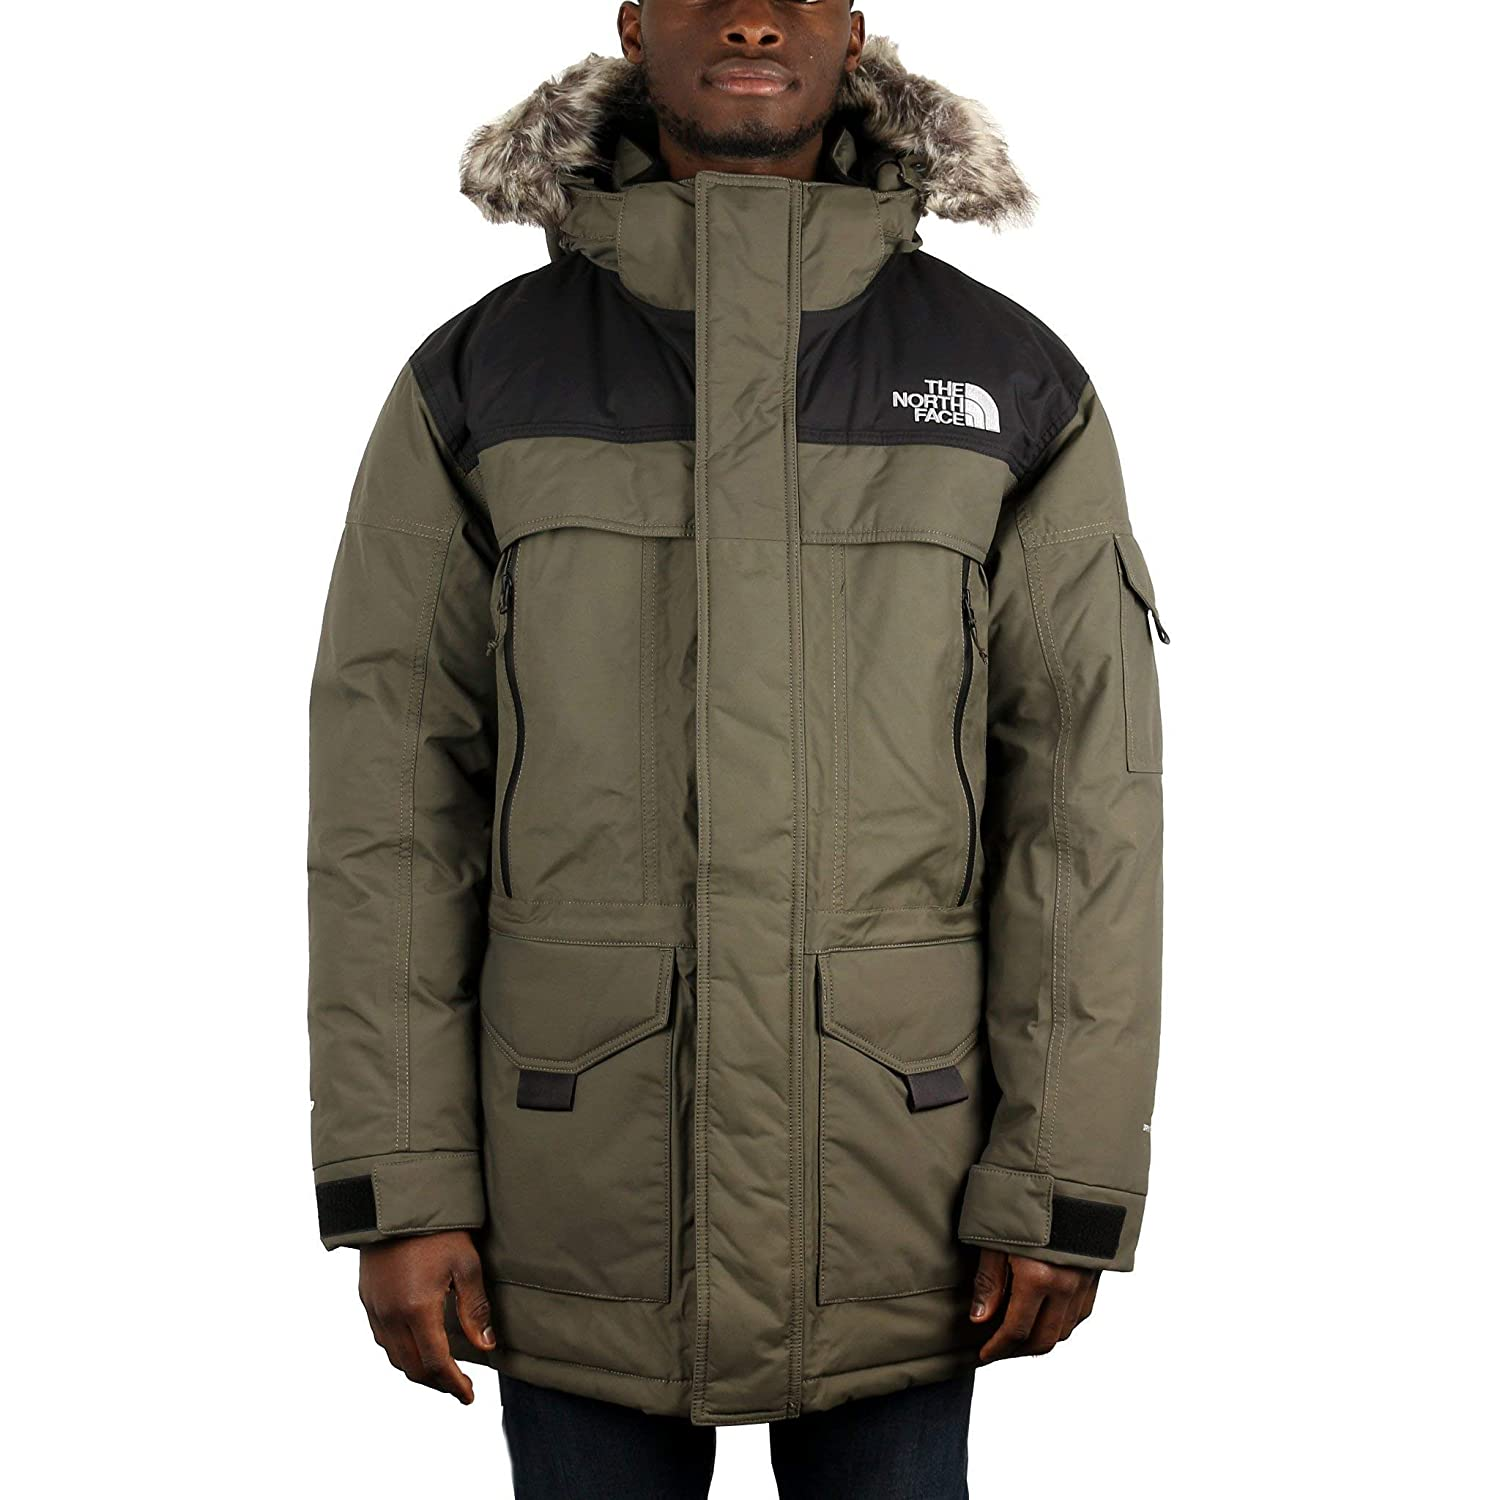 The North Face MC Murdo 2 - Parka de Plumas para Hombre: Amazon.es: Ropa y accesorios